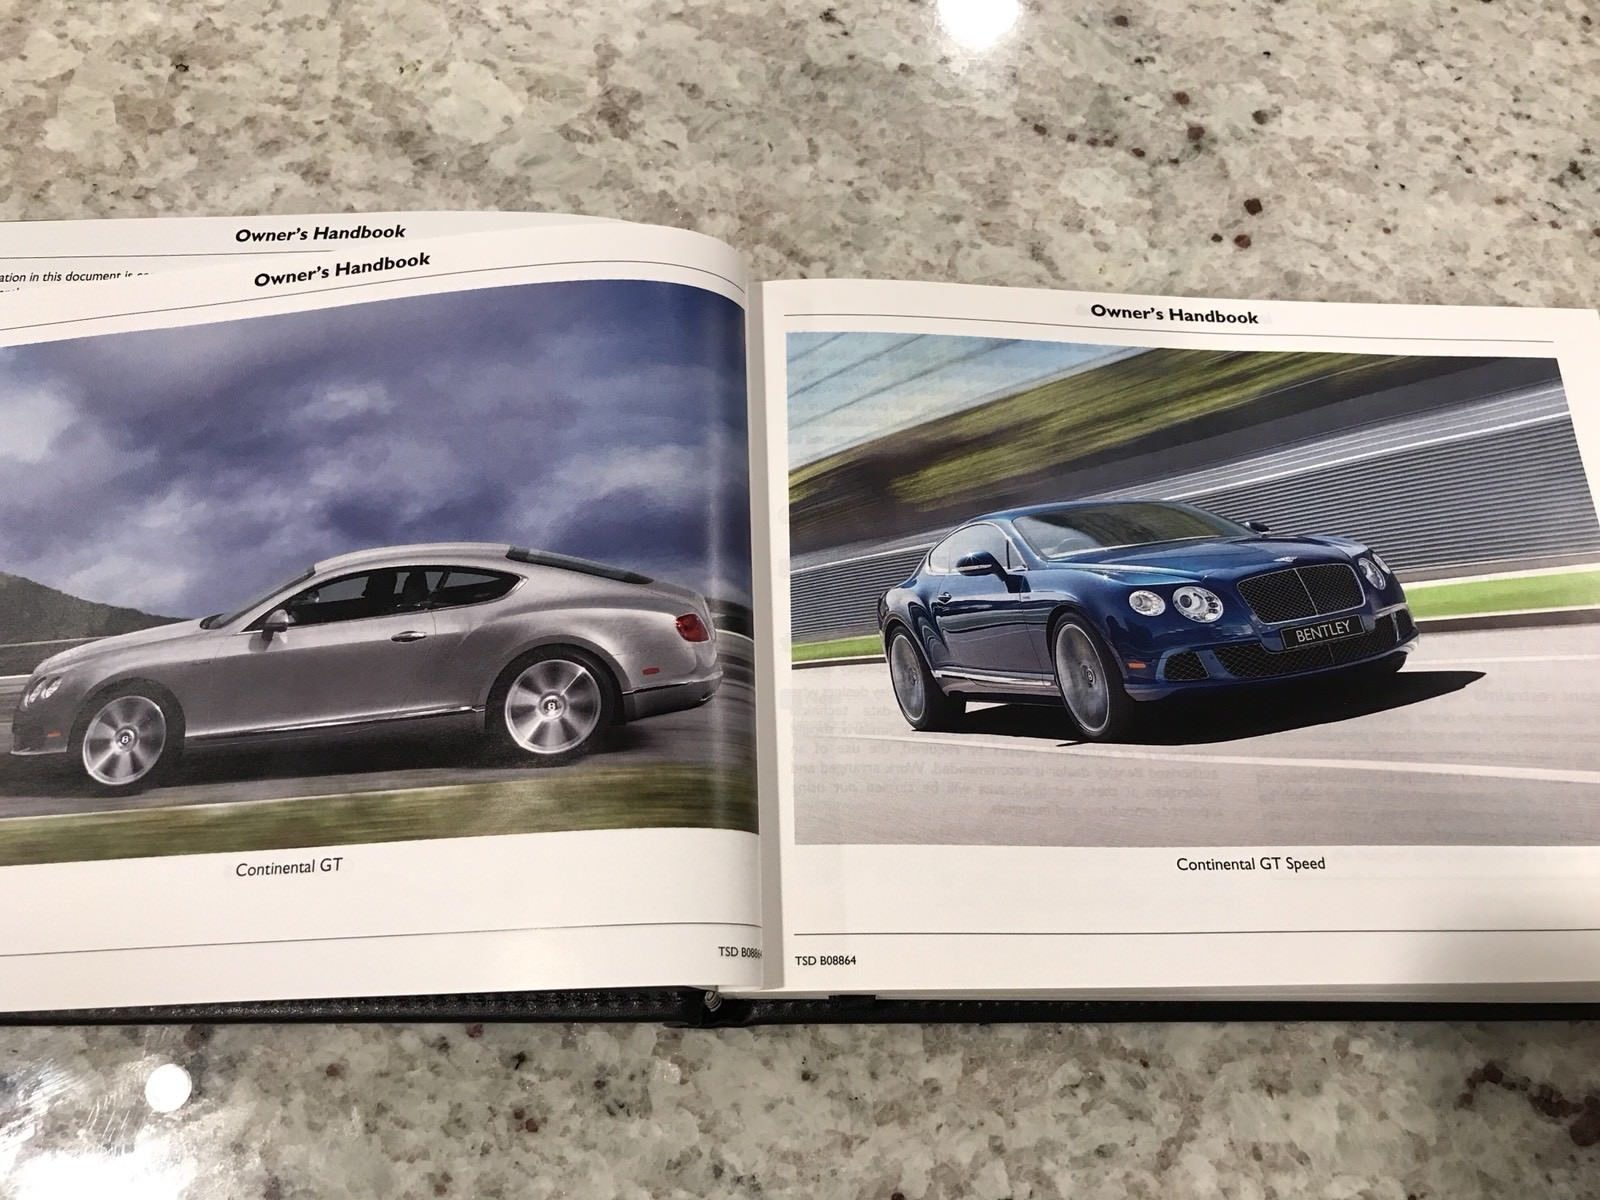 awesome awesome 2013 2014 bentley continental gt speed owners manual rh pinterest com bentley continental gt owners manual download bentley continental gt repair manual pdf